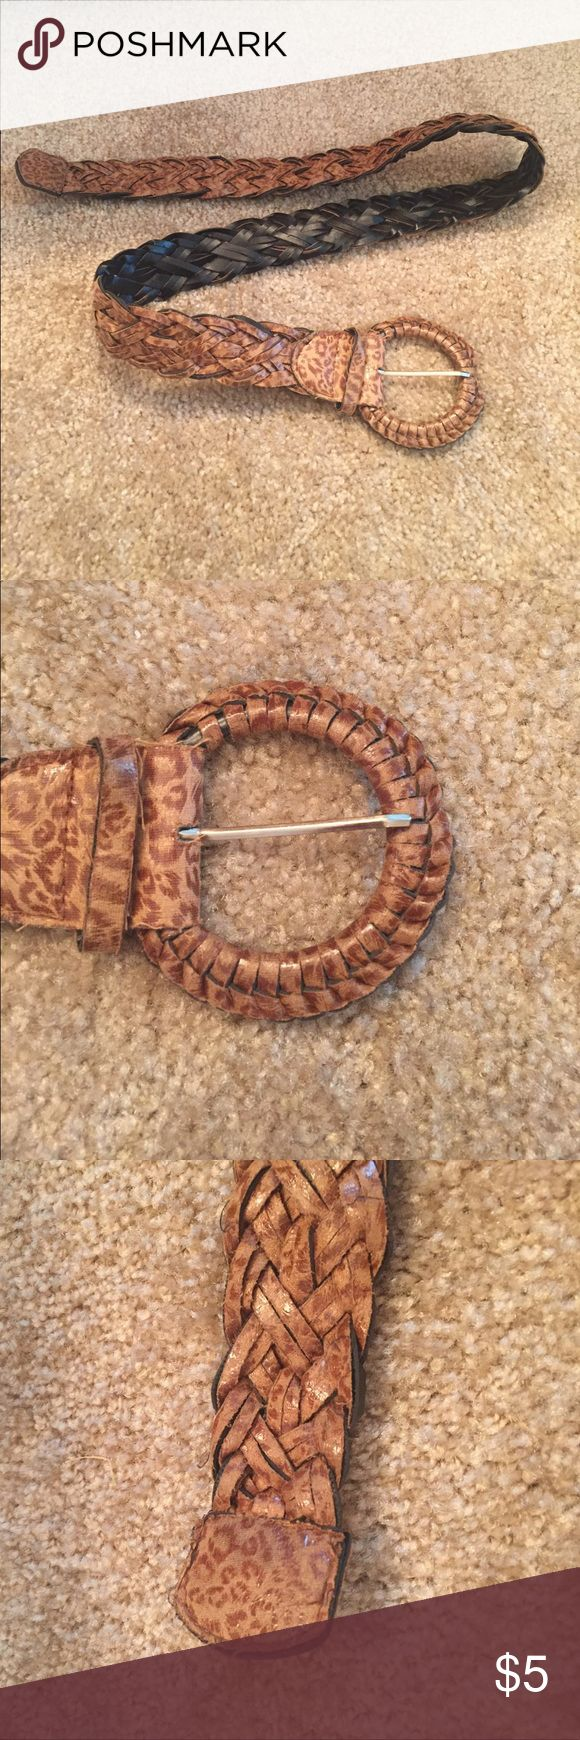 Animal Print Belt This belt is in great condition. Accessories Belts